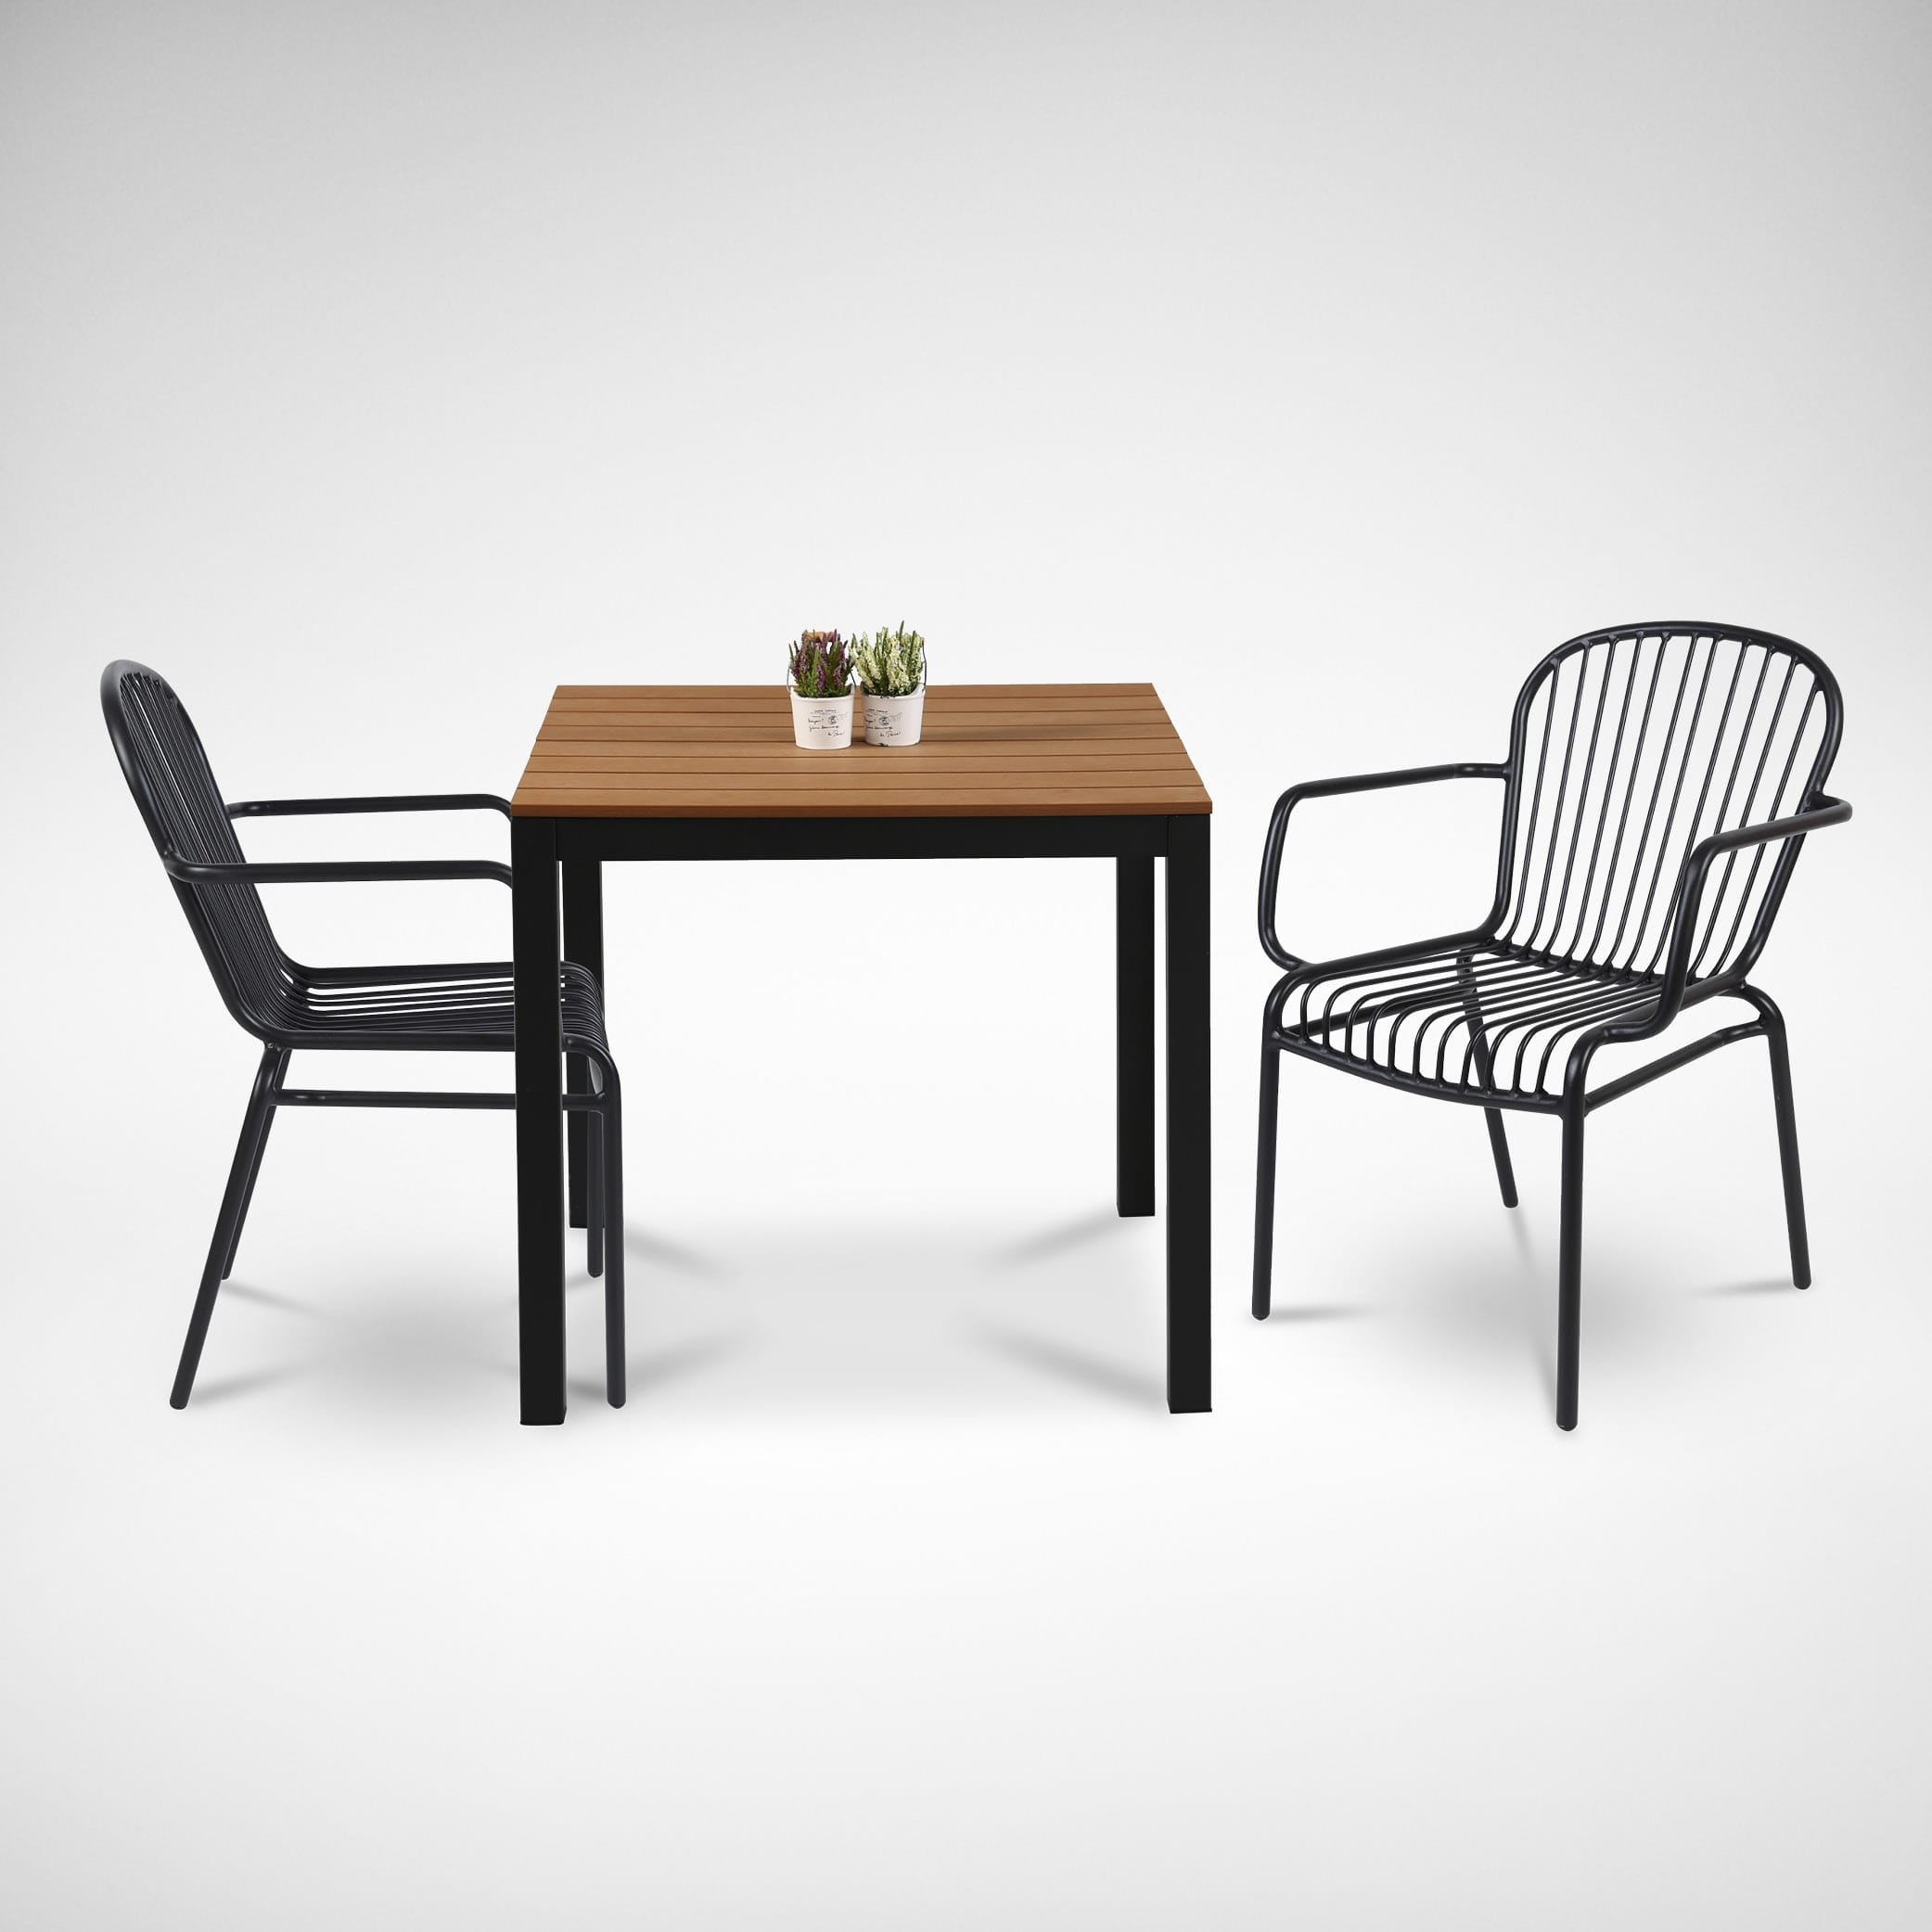 Fossil Square Outdoor Dining Table Renata Armchair